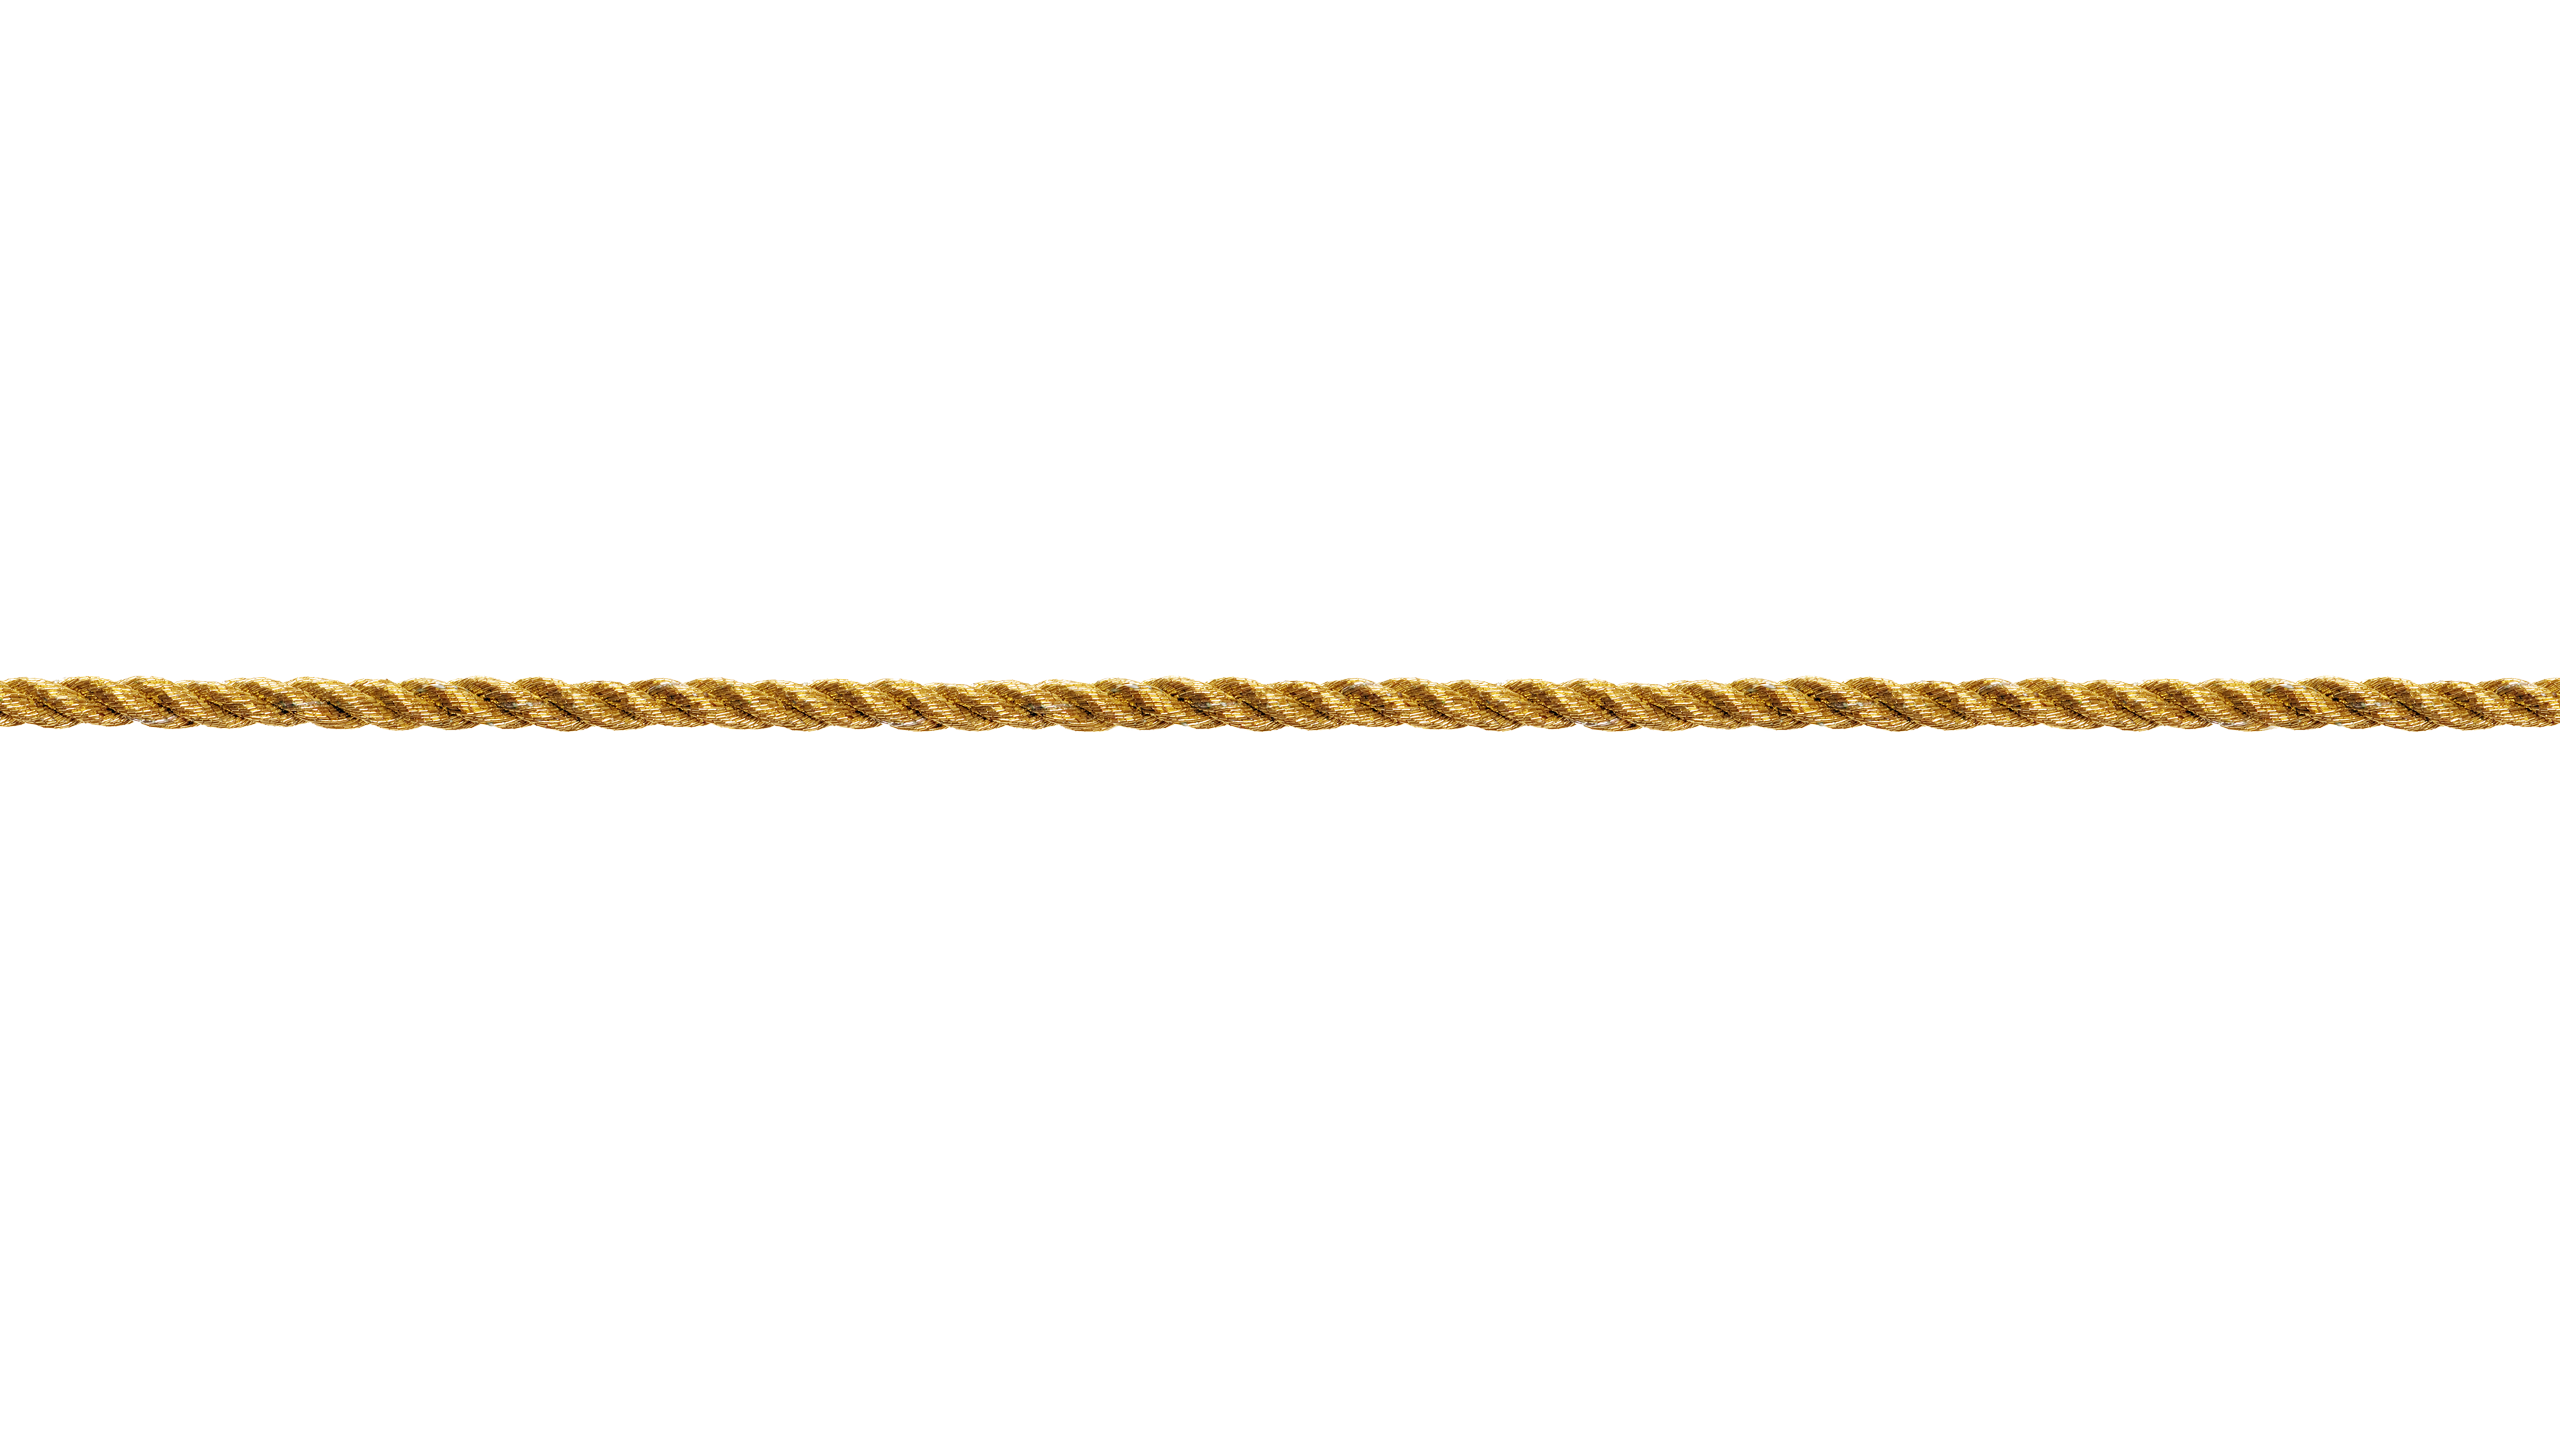 Rope line png. Picture free icons and